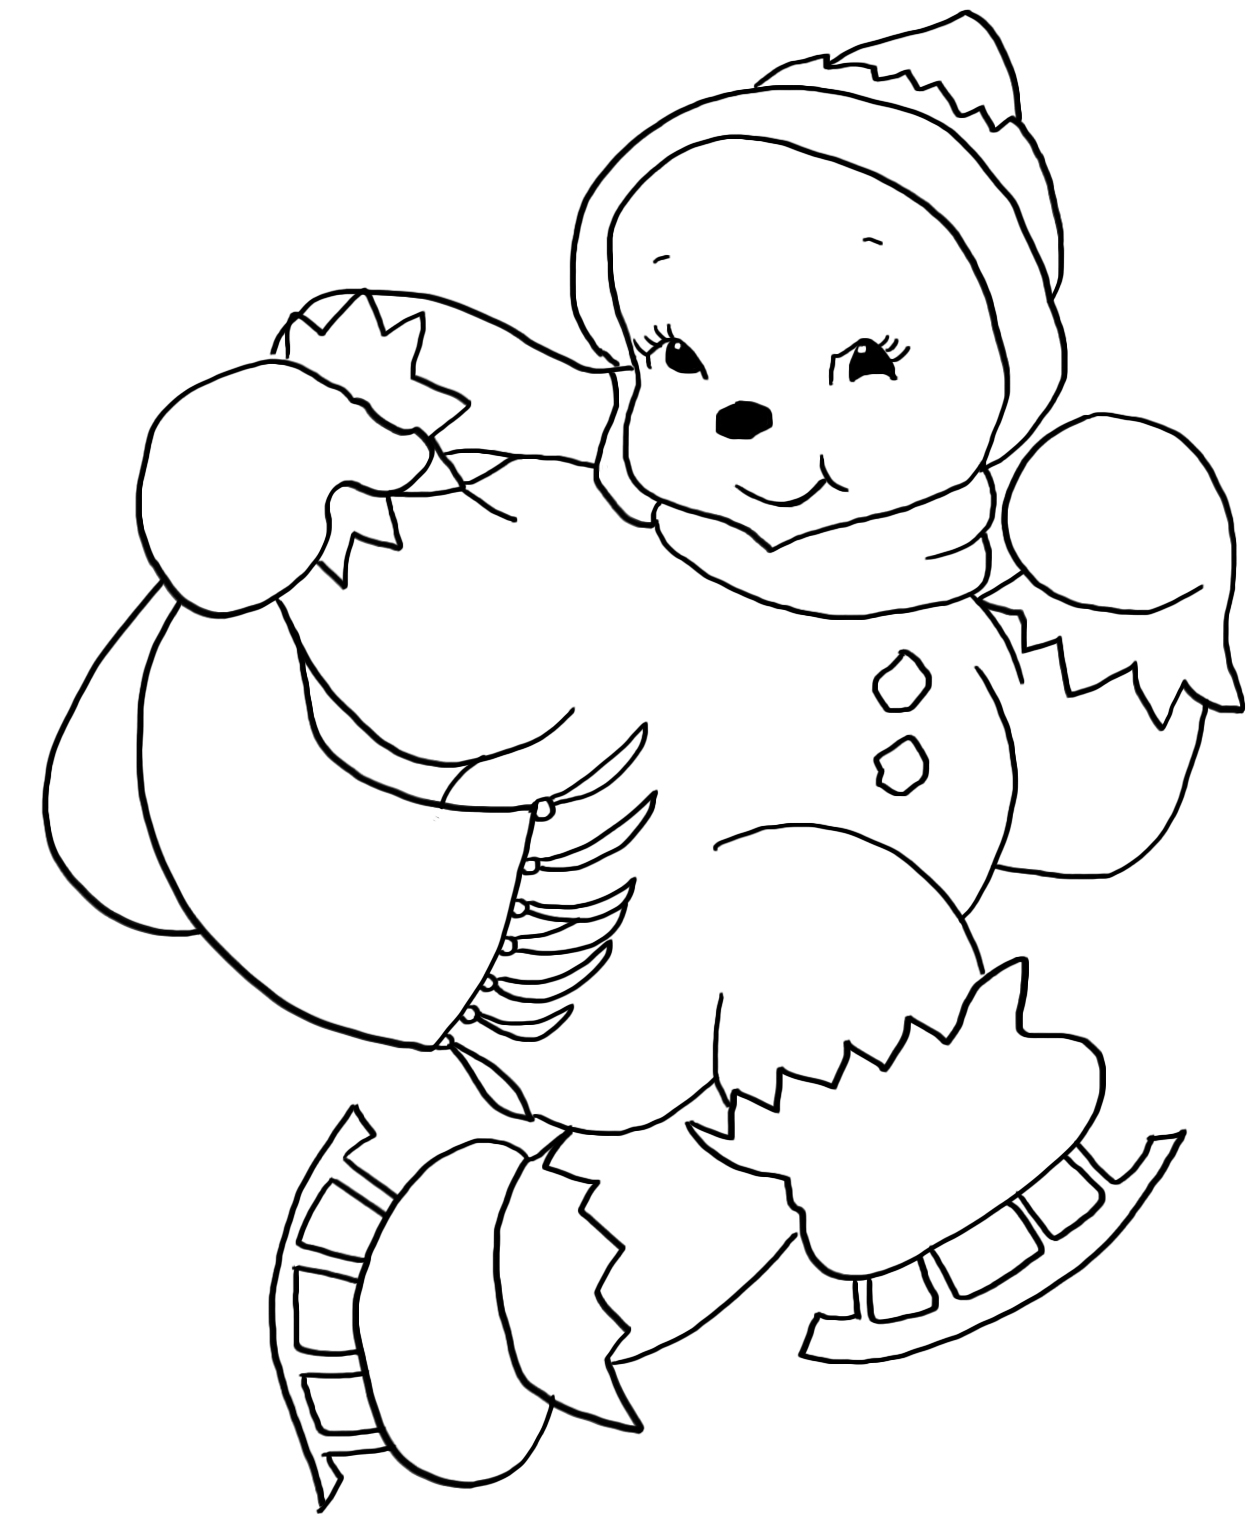 Christmas coloring pages for Coloring pages of snowman